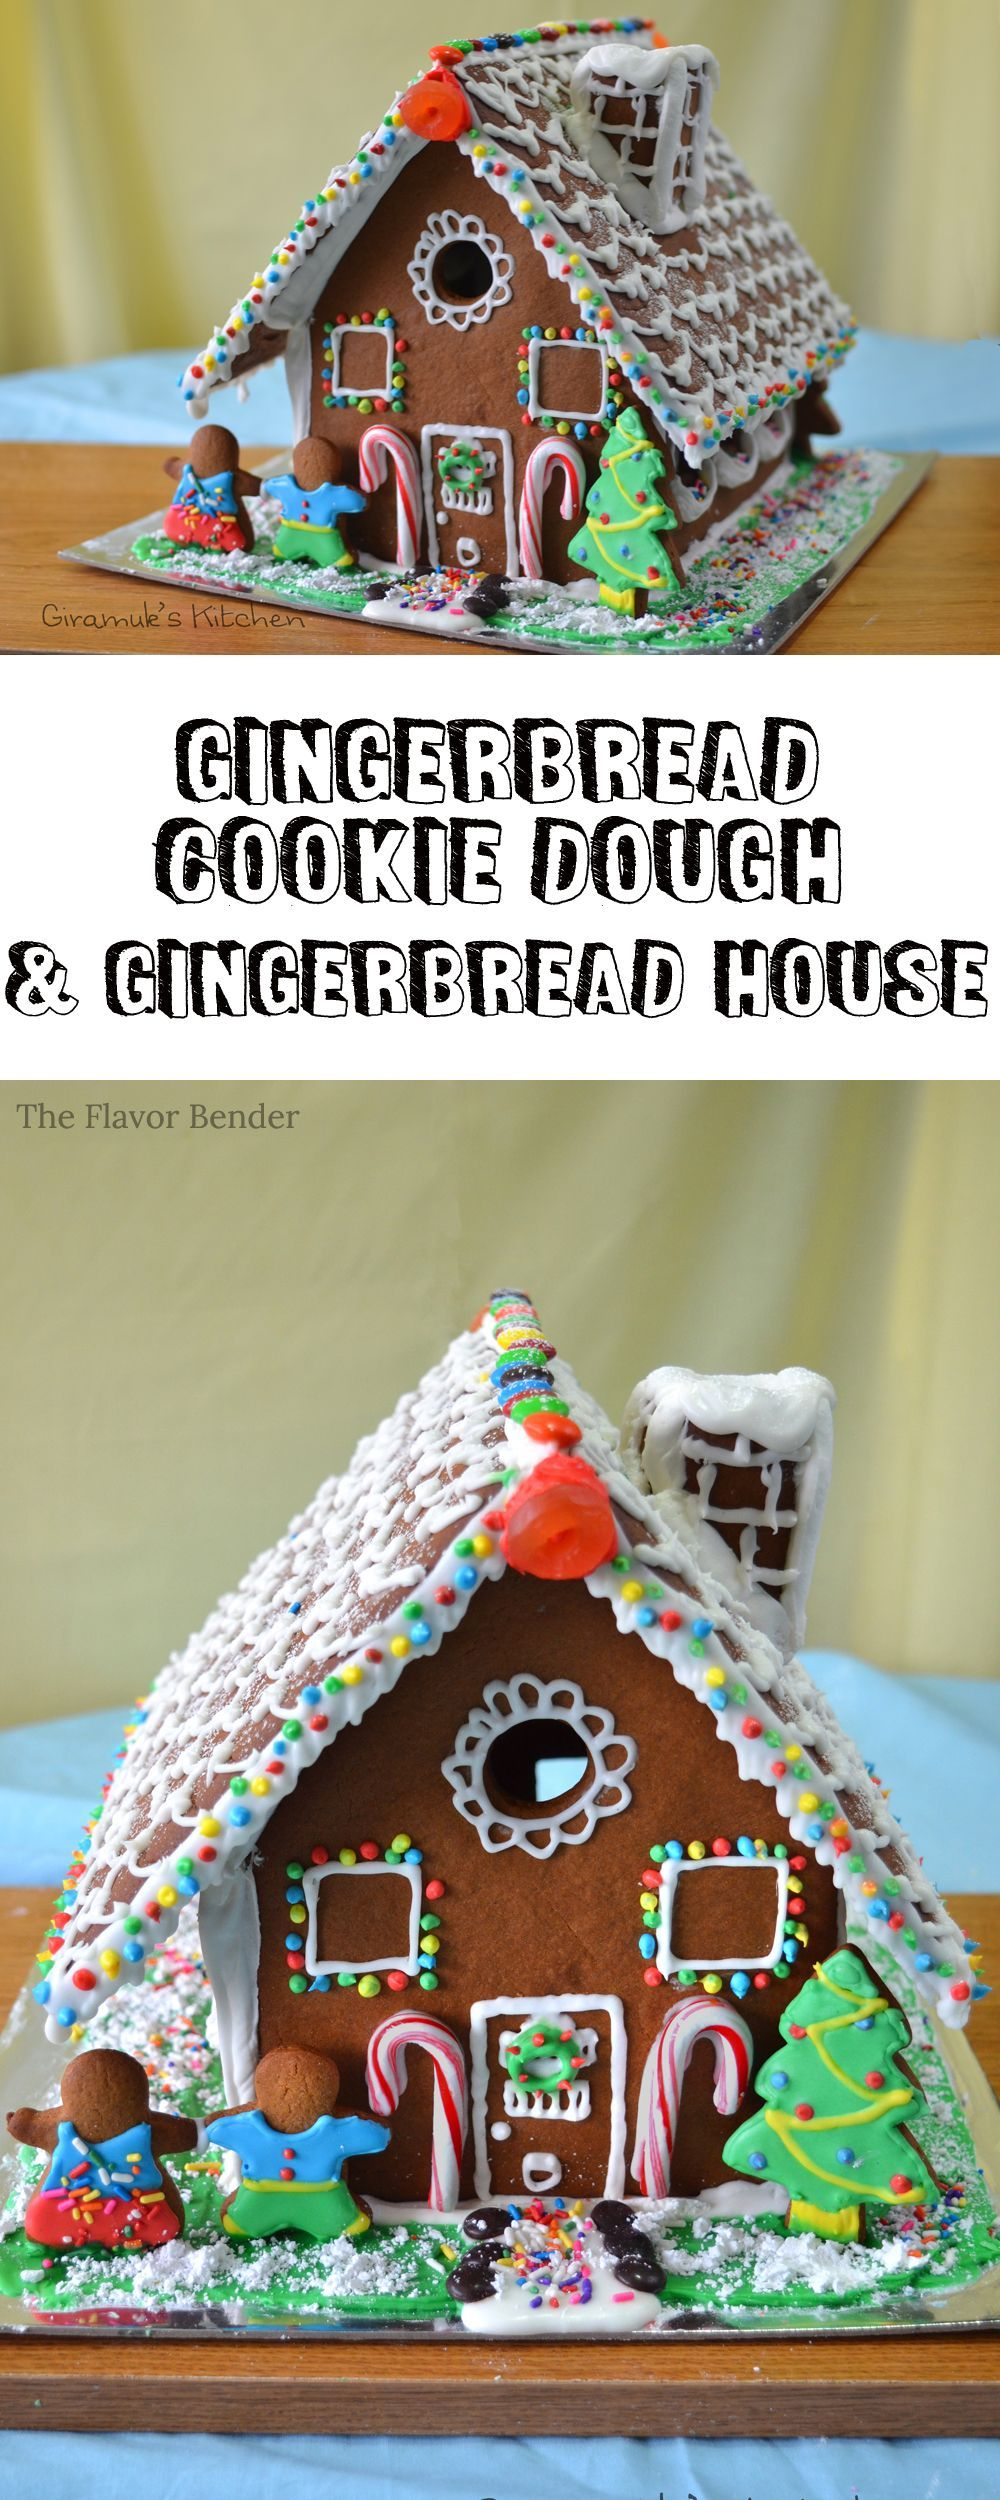 Gingerbread House {Recipe & Template}   The Flavor Bender #gingerbreadhousetemplate Gingerbread House {Recipe & Template}   The Flavor Bender #gingerbreadhousetemplate